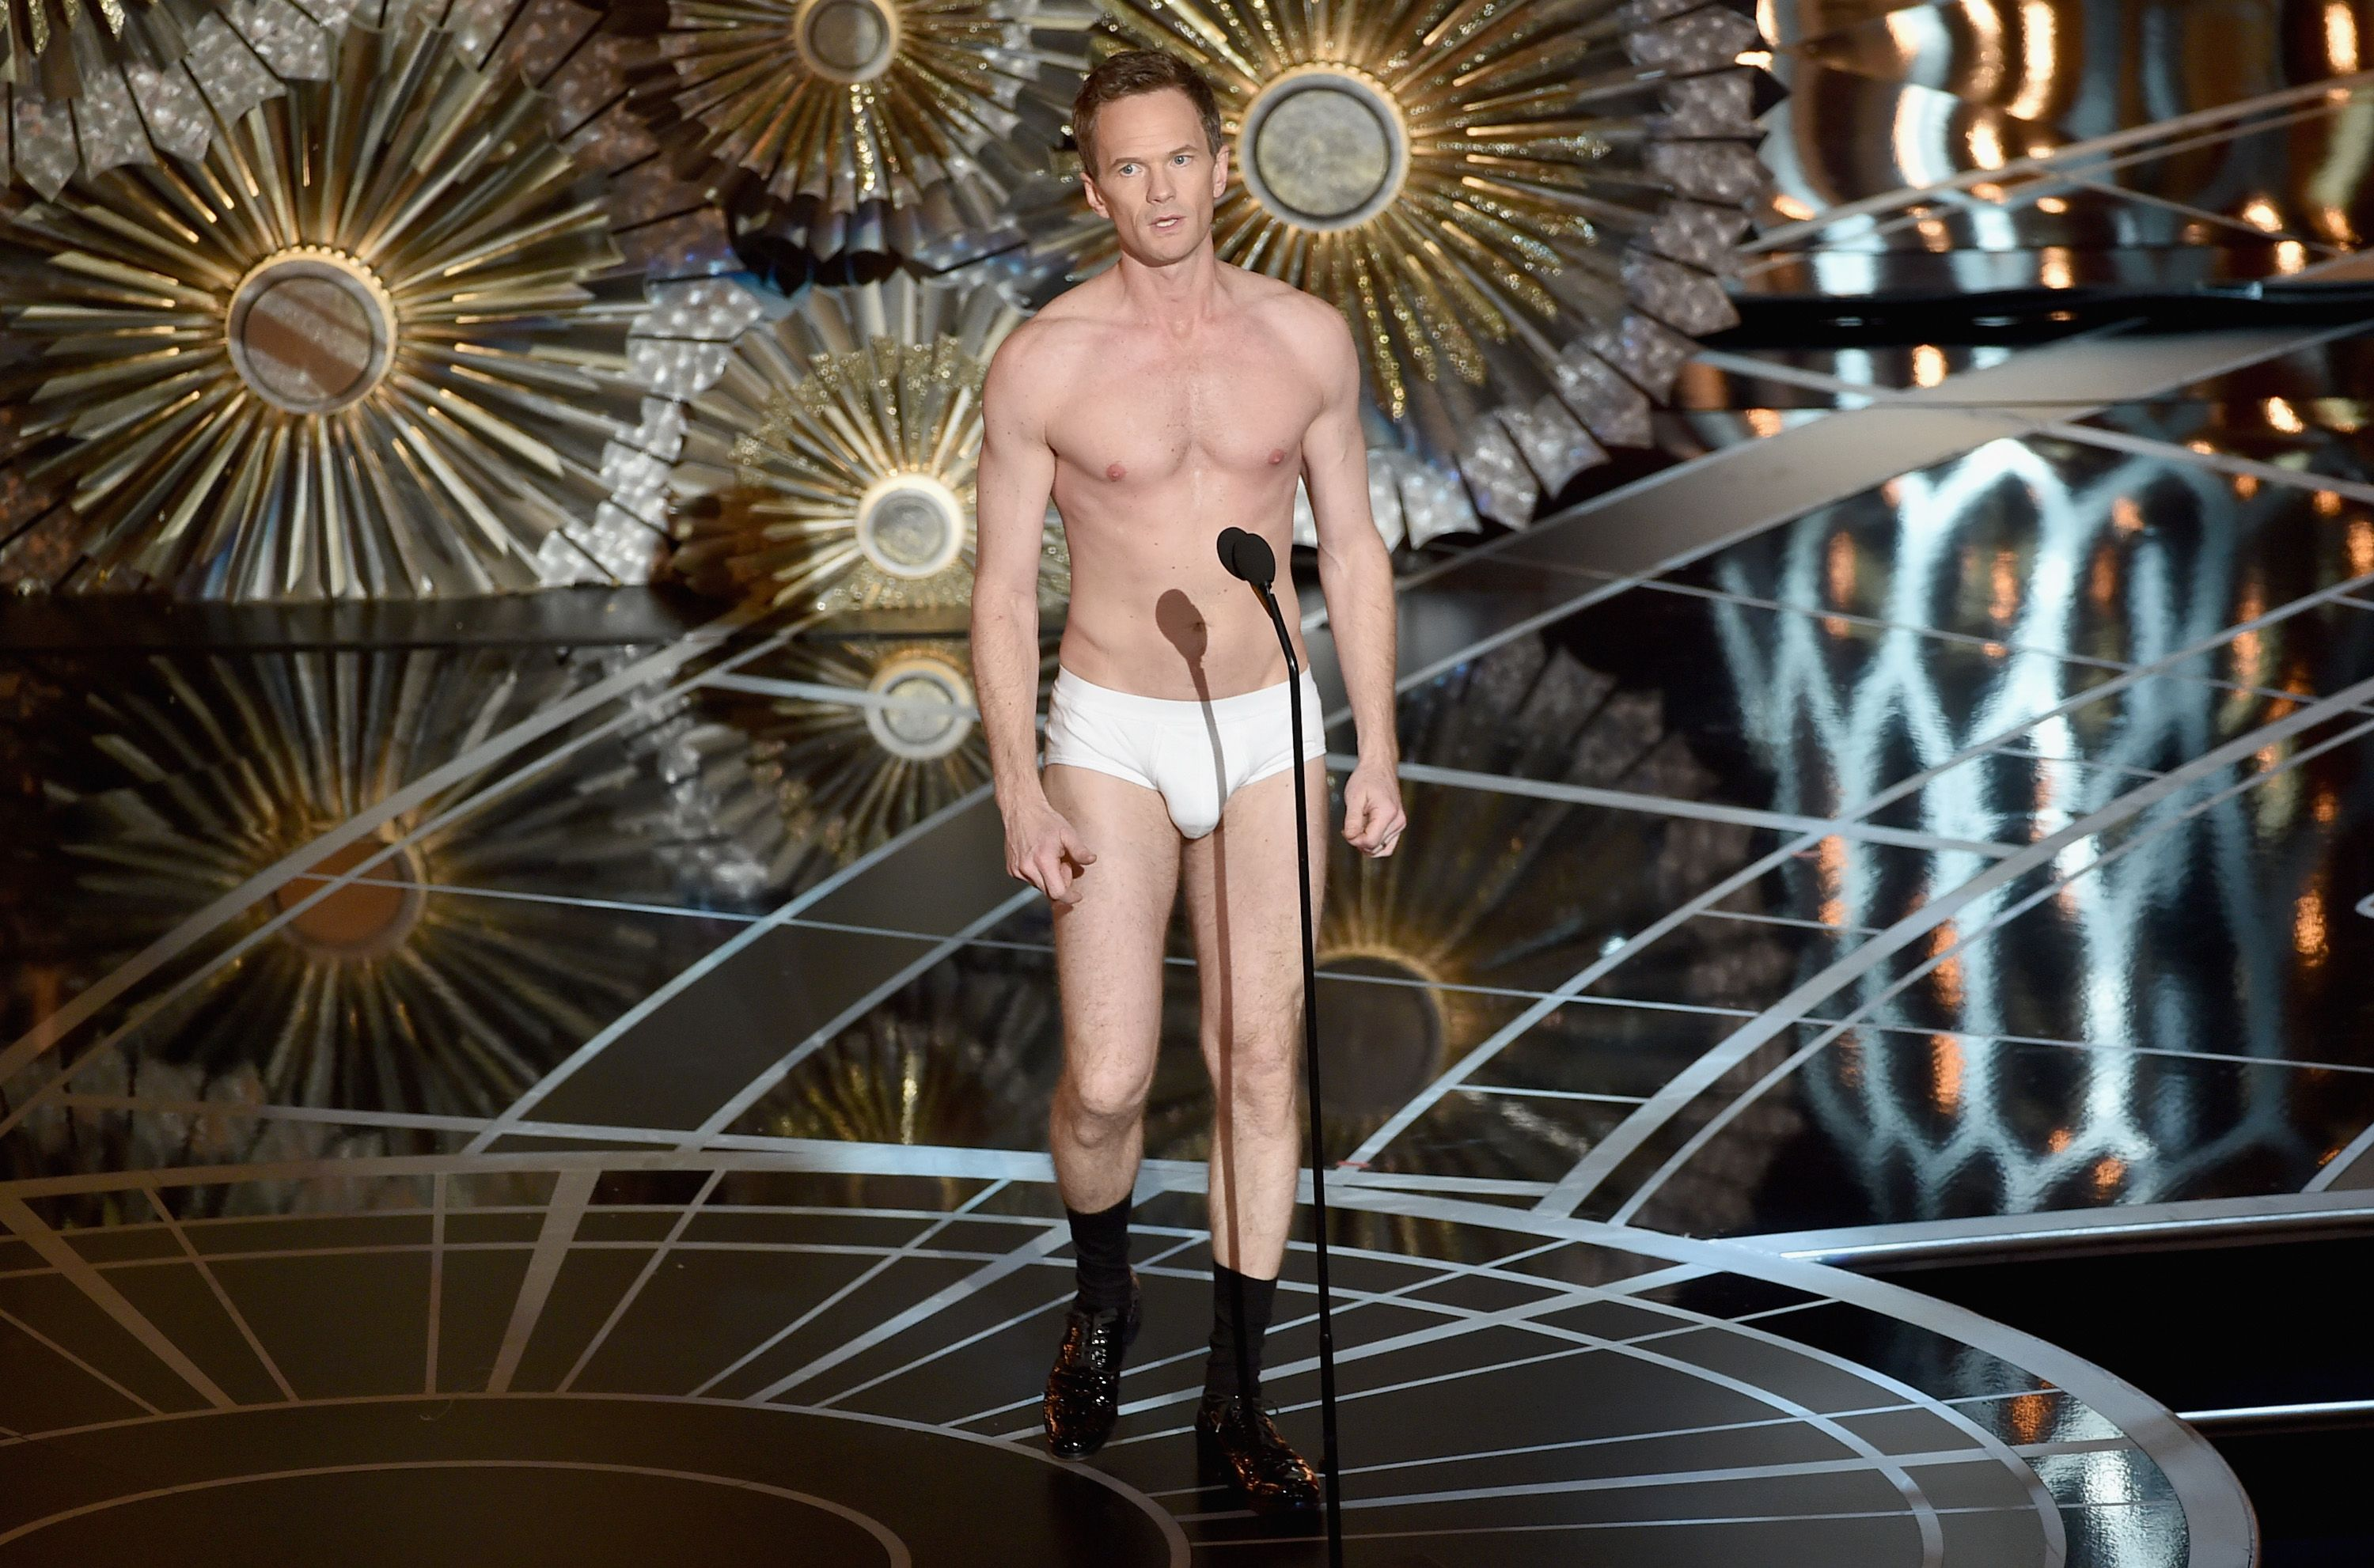 2015: ...And when he stripped down into his underwear. Harris fully committed to putting on an entertaining show, so much so that he stripped down into nothing but his underwear , socks, and shoes on stage.